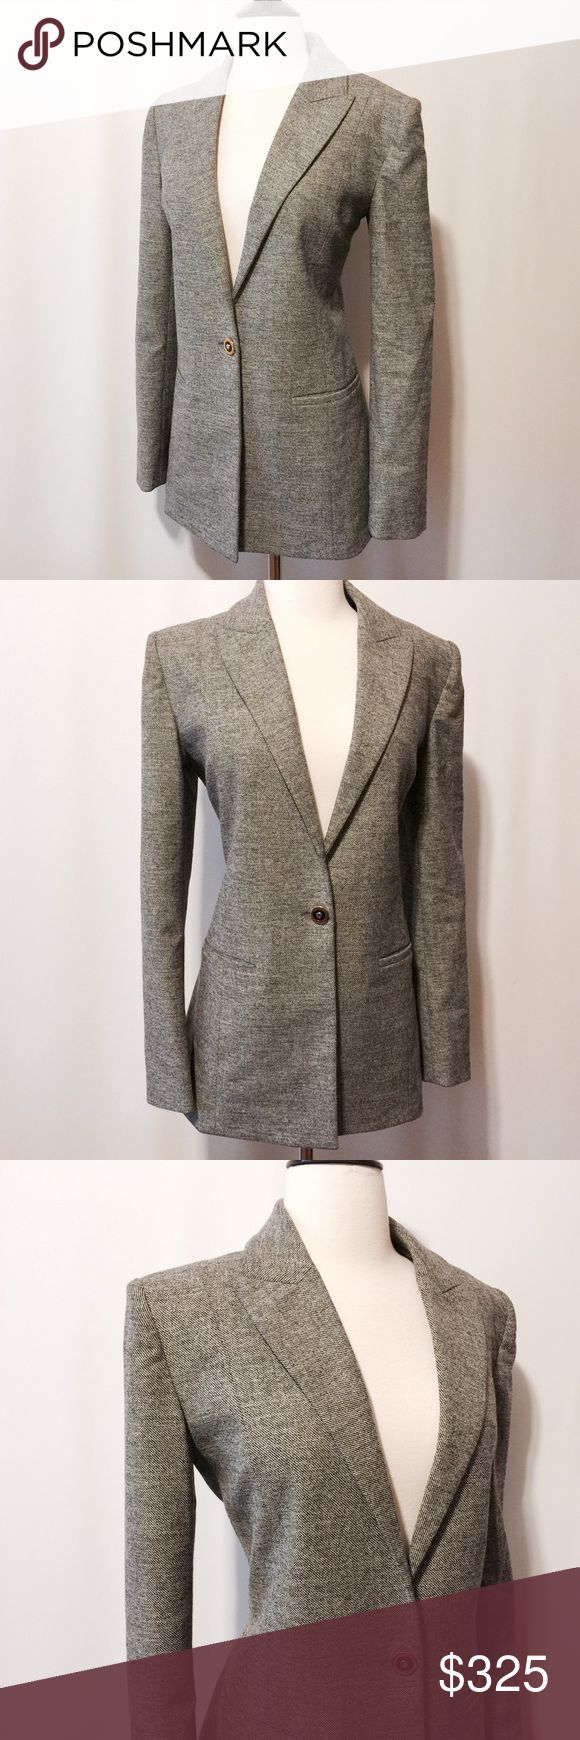 """🌀 Balenciaga Classic Tweed One Button Blazer Designer Dream!! Classic black and white wool tweed, long one button closure with peak lapel, Princess seams for great fit with functional welt pockets, kick pleat at center back. Fully lined.  Whether you specialize in designer clothing in your closet or you're just starting out this piece is a must have!! Add this jacket to any outfit and BAM!!   98% Wool 2% Elastane  100% Rayon lining  Dry Clean Only  Made in France  39"""" bust  36"""" waist  16…"""